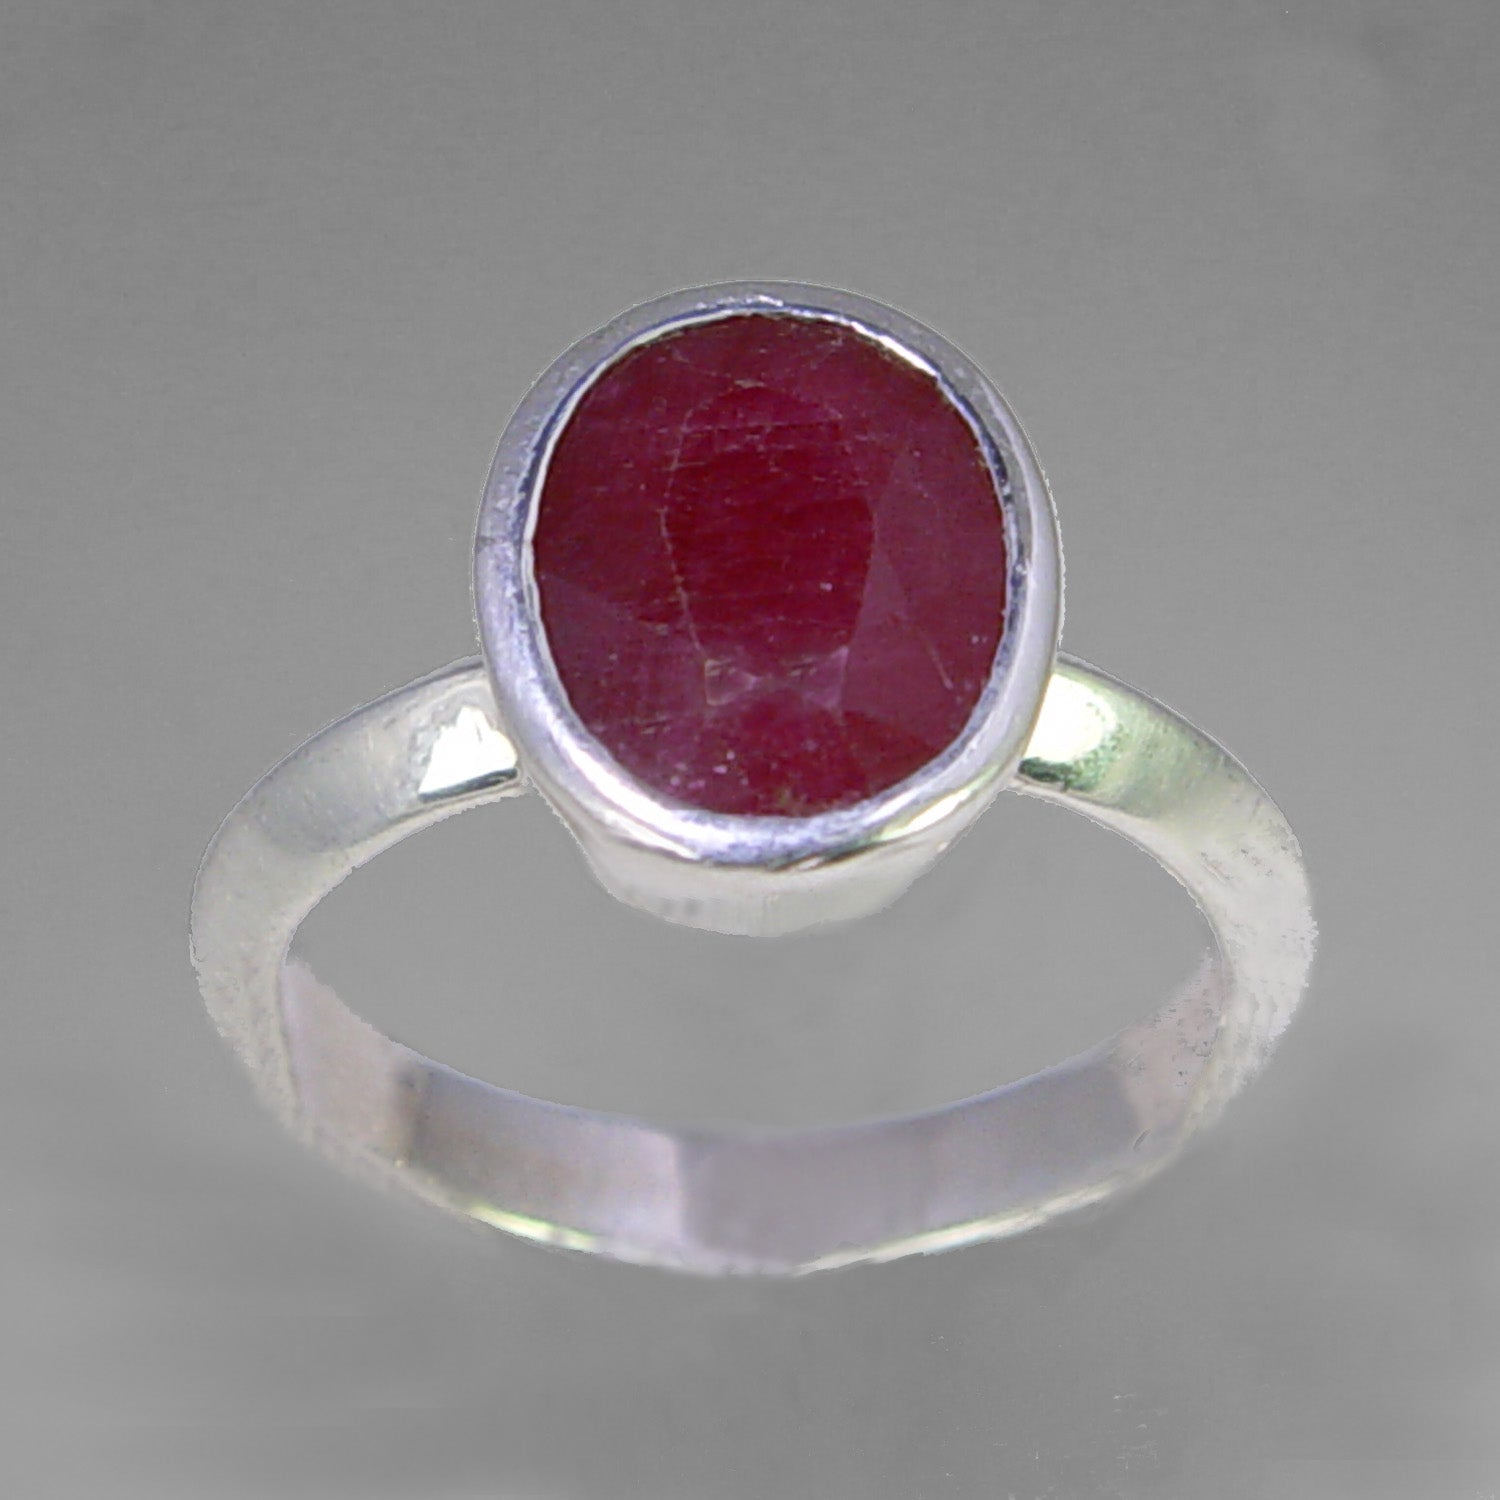 Ruby 4.4 ct Oval Sterling Silver Ring, Size 8